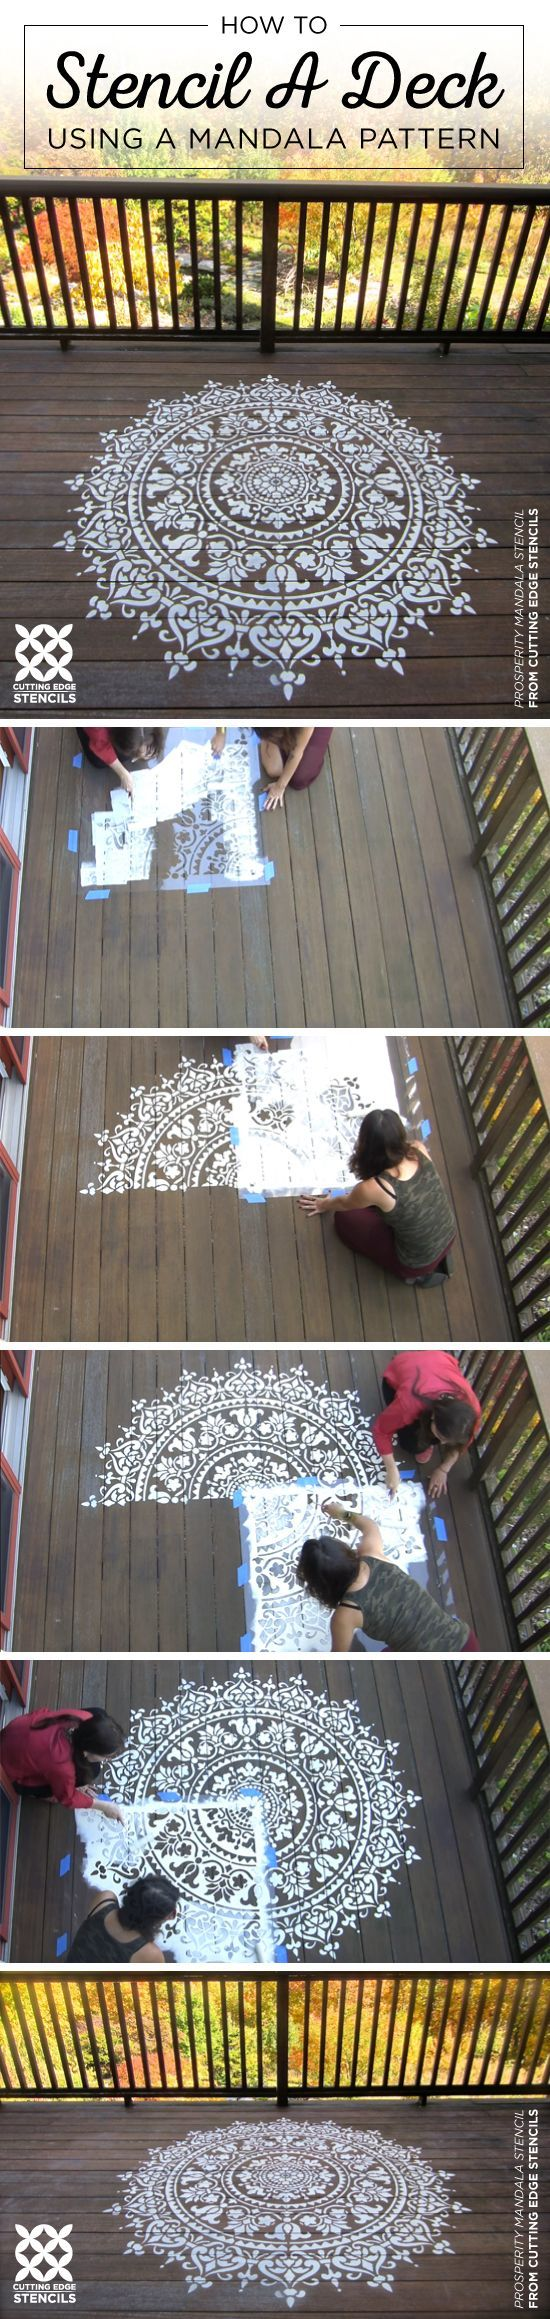 Cutting Edge Stencils shares how to stencil a deck using a large Prosperity Mandala Stencil pattern. http://www.cuttingedgestencils.com/prosperity-mandala-stencil-yoga-mandala-stencils-designs.html